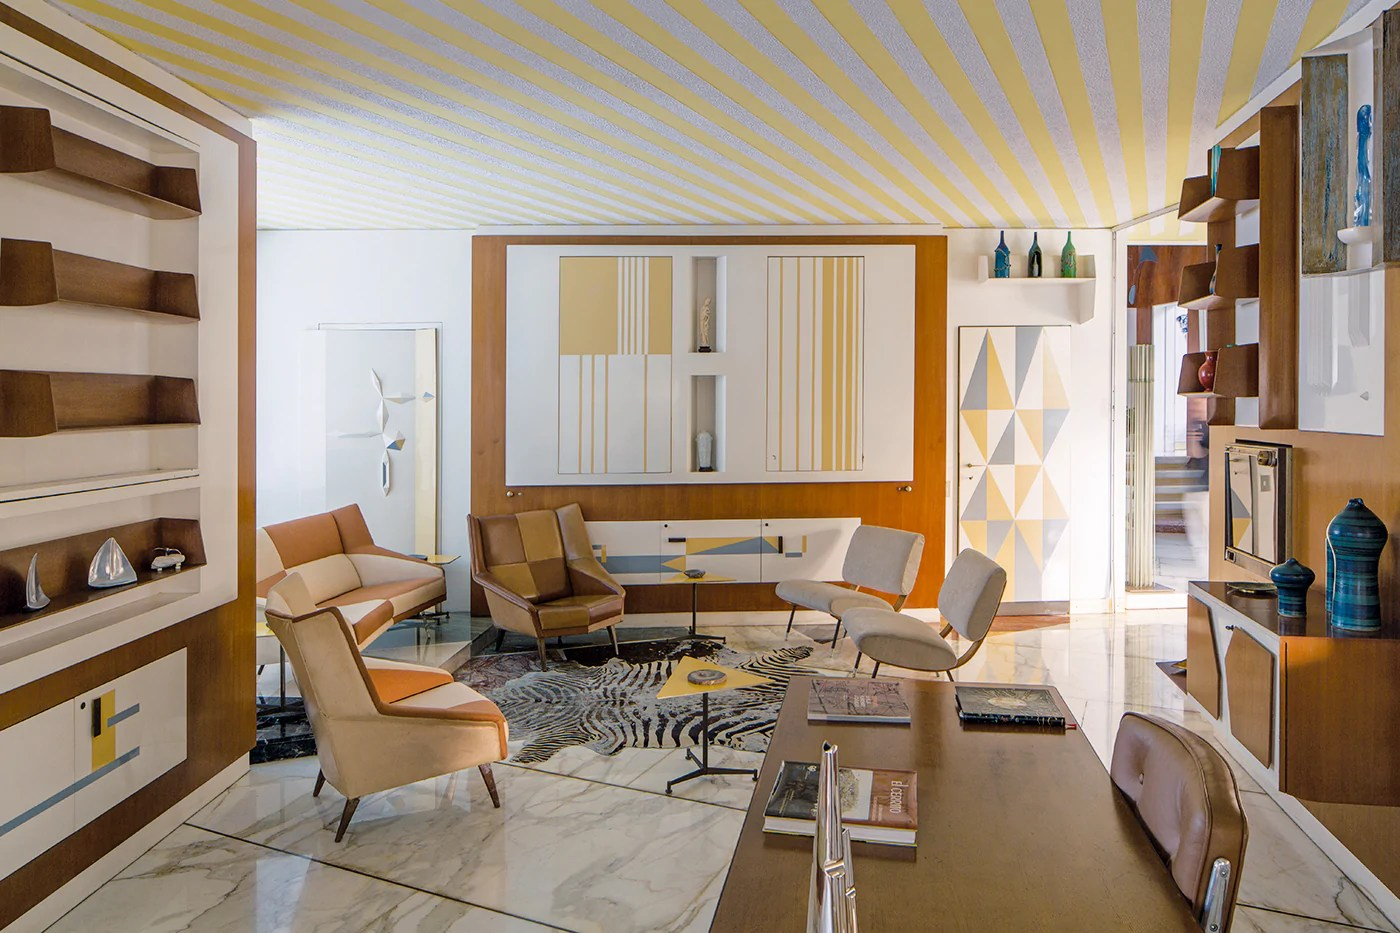 Gio Ponti Was A Master Of Italian Flair Gestalten Eu Shop